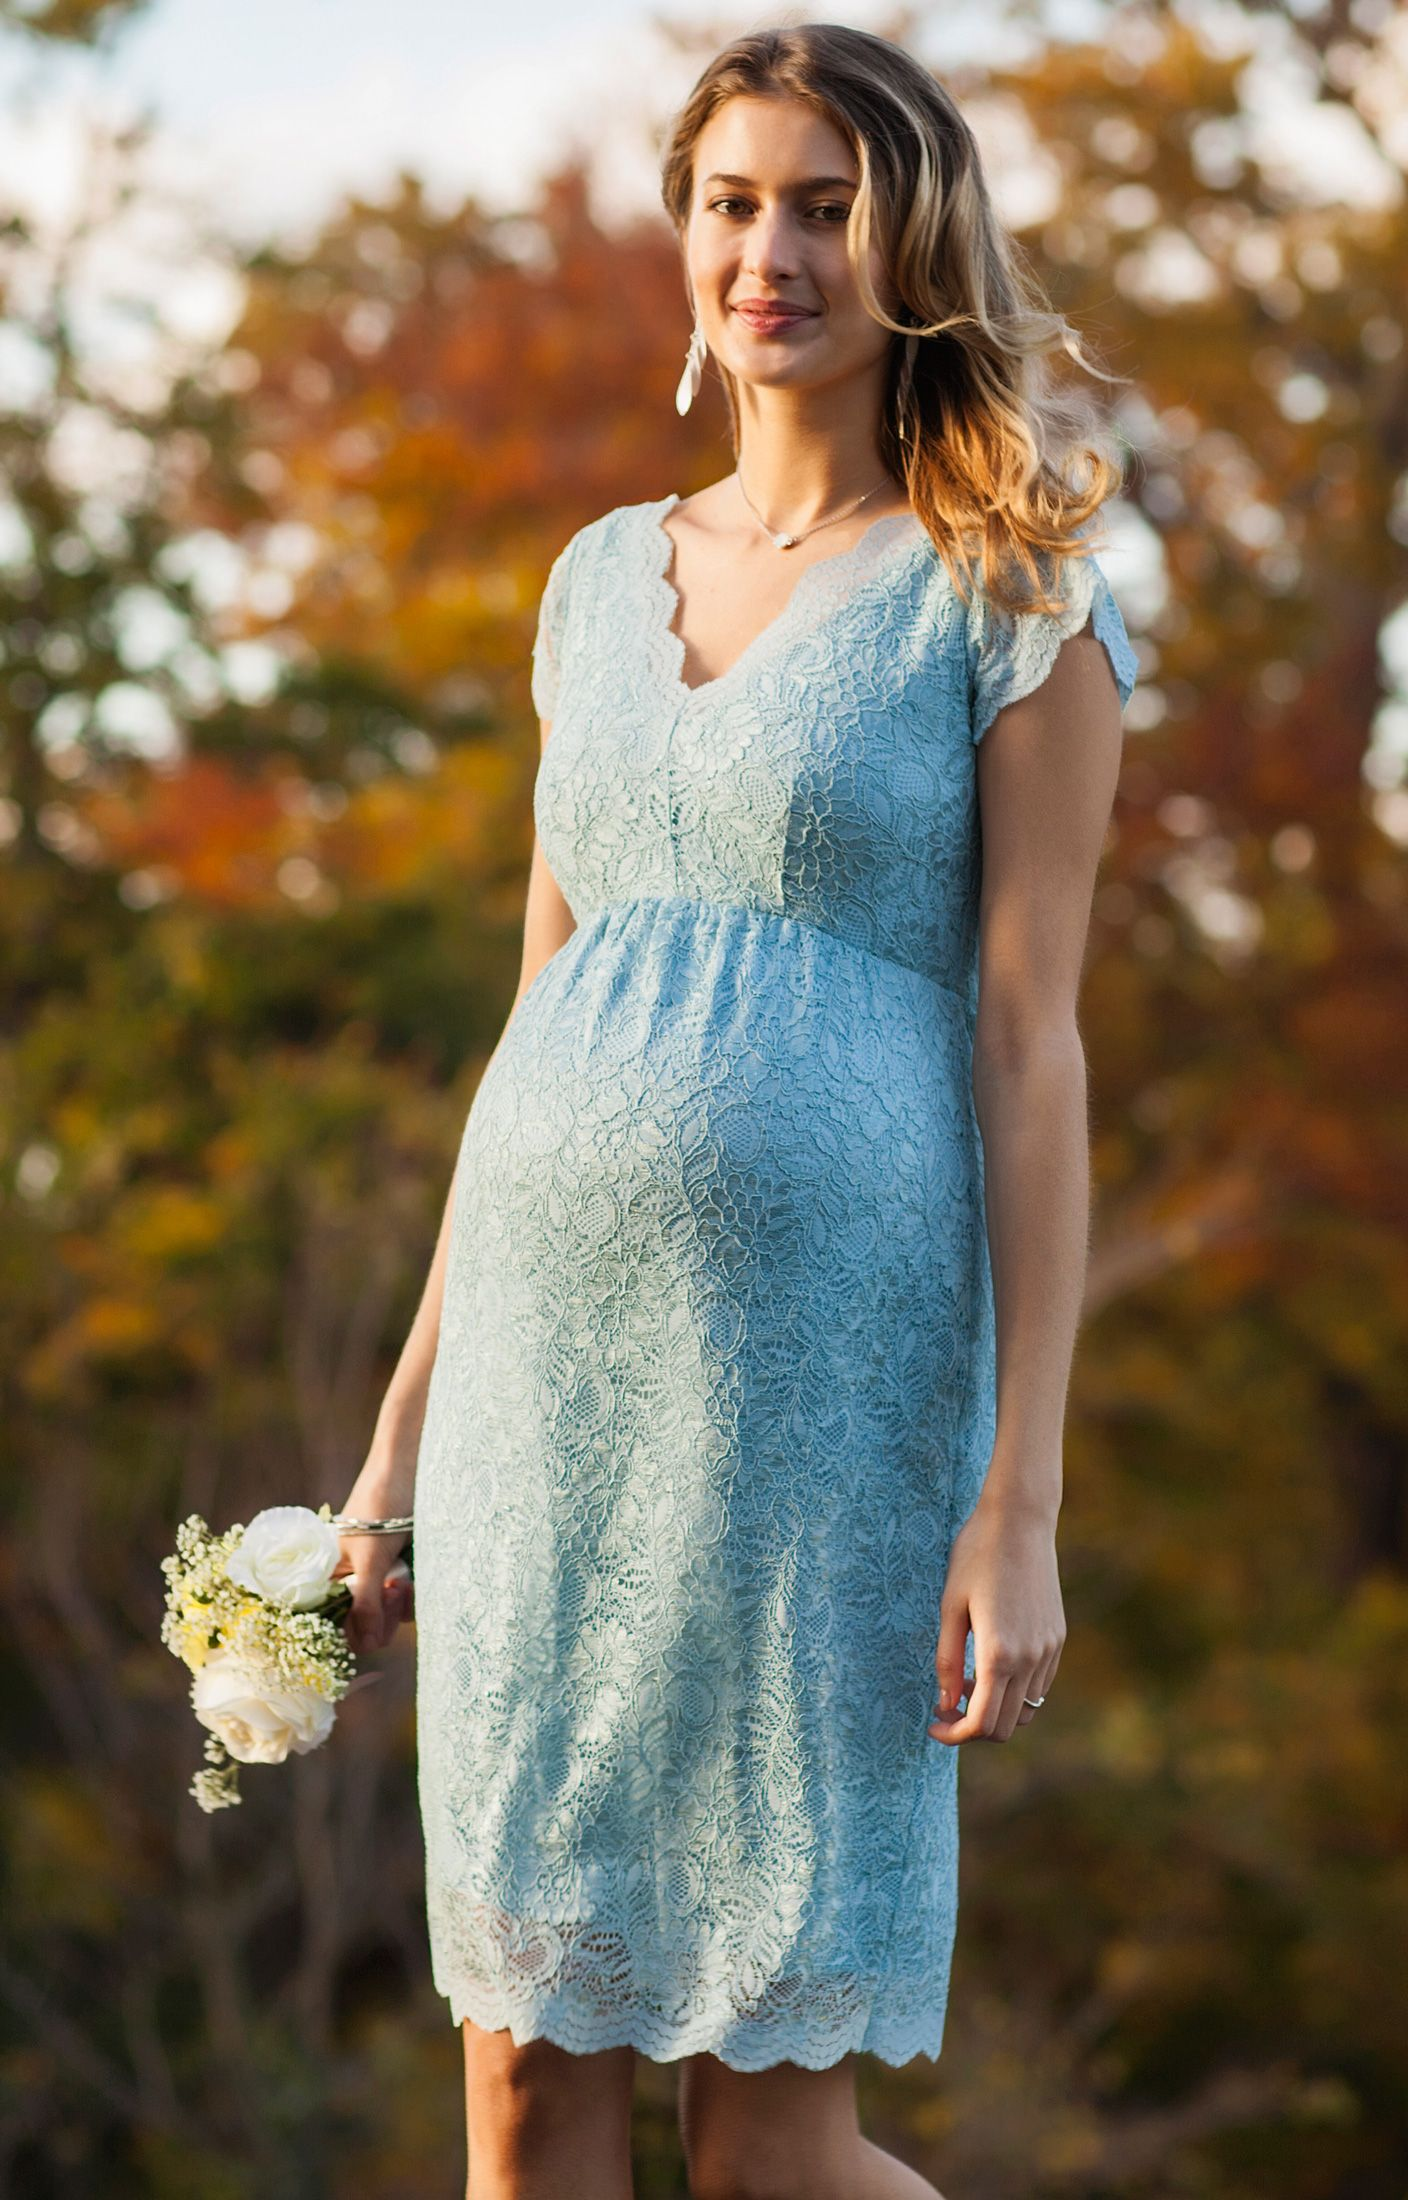 Laura Lace Dress | Tiffany rose and Lace dress